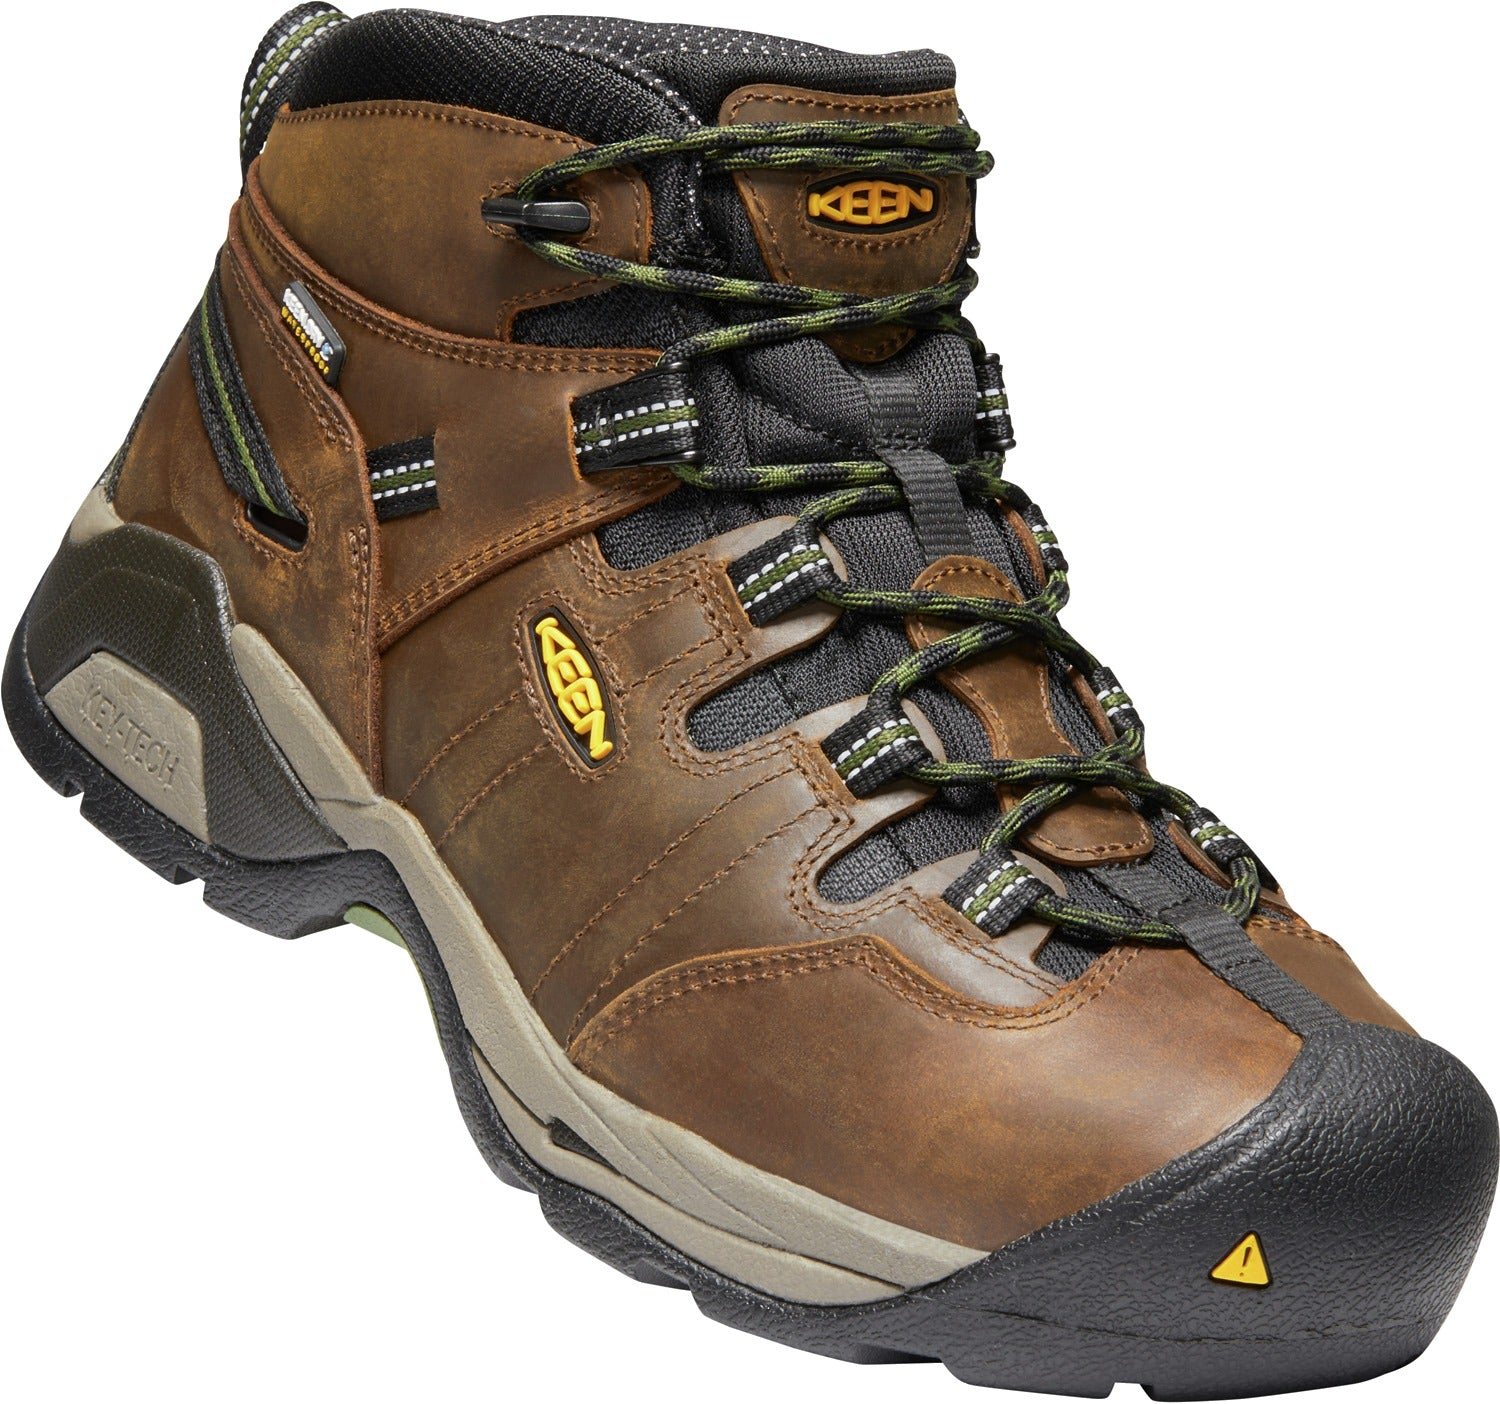 2f39723154ec Detroit XT Mid Steel Toe Waterproof - Cascade Brown   Bronze Green